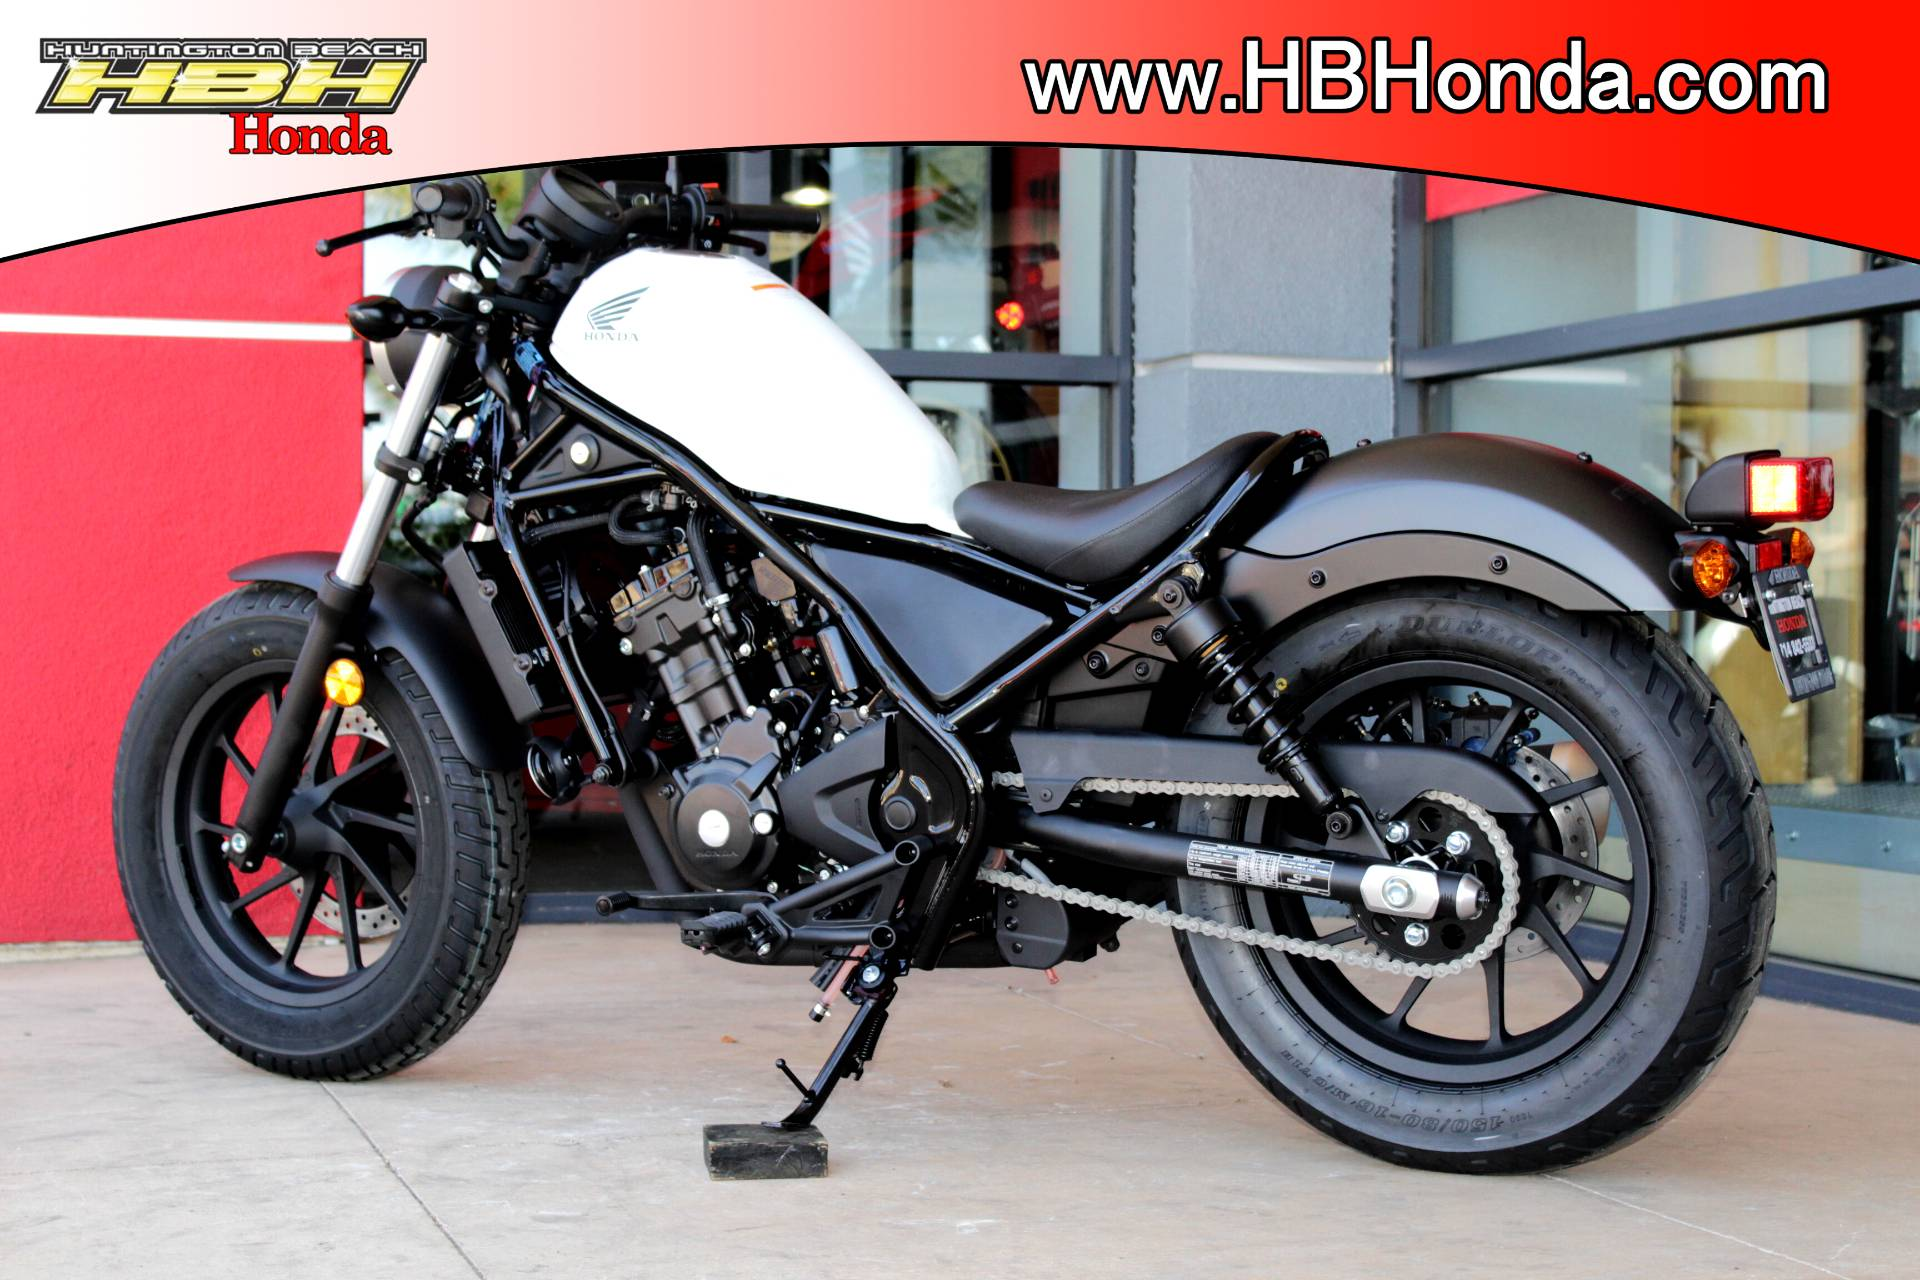 2017 Honda Rebel 300 in Huntington Beach, California